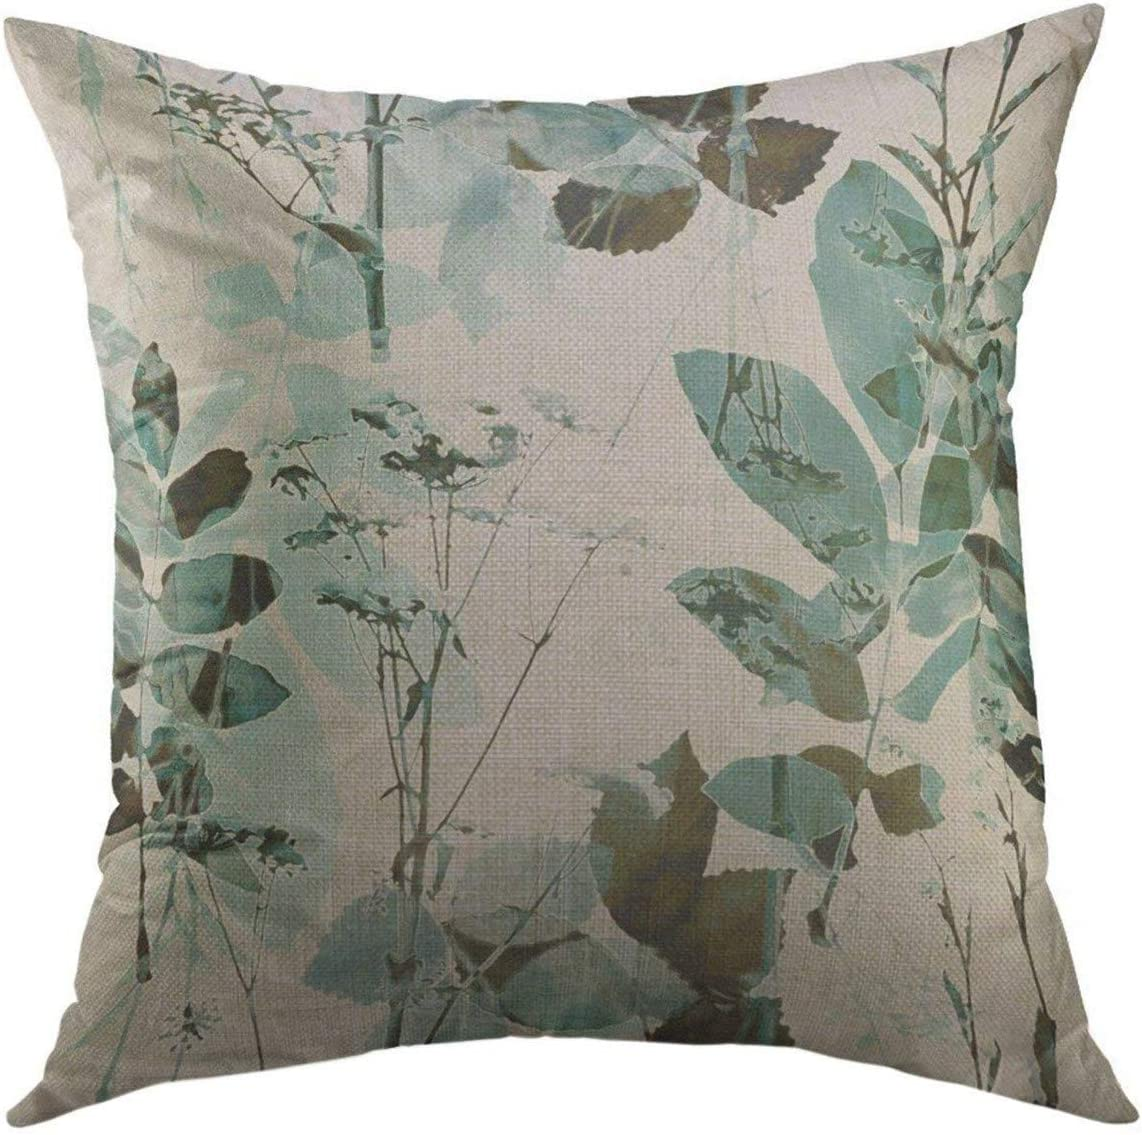 Throw Pillow Cover Case for Couch Sofa